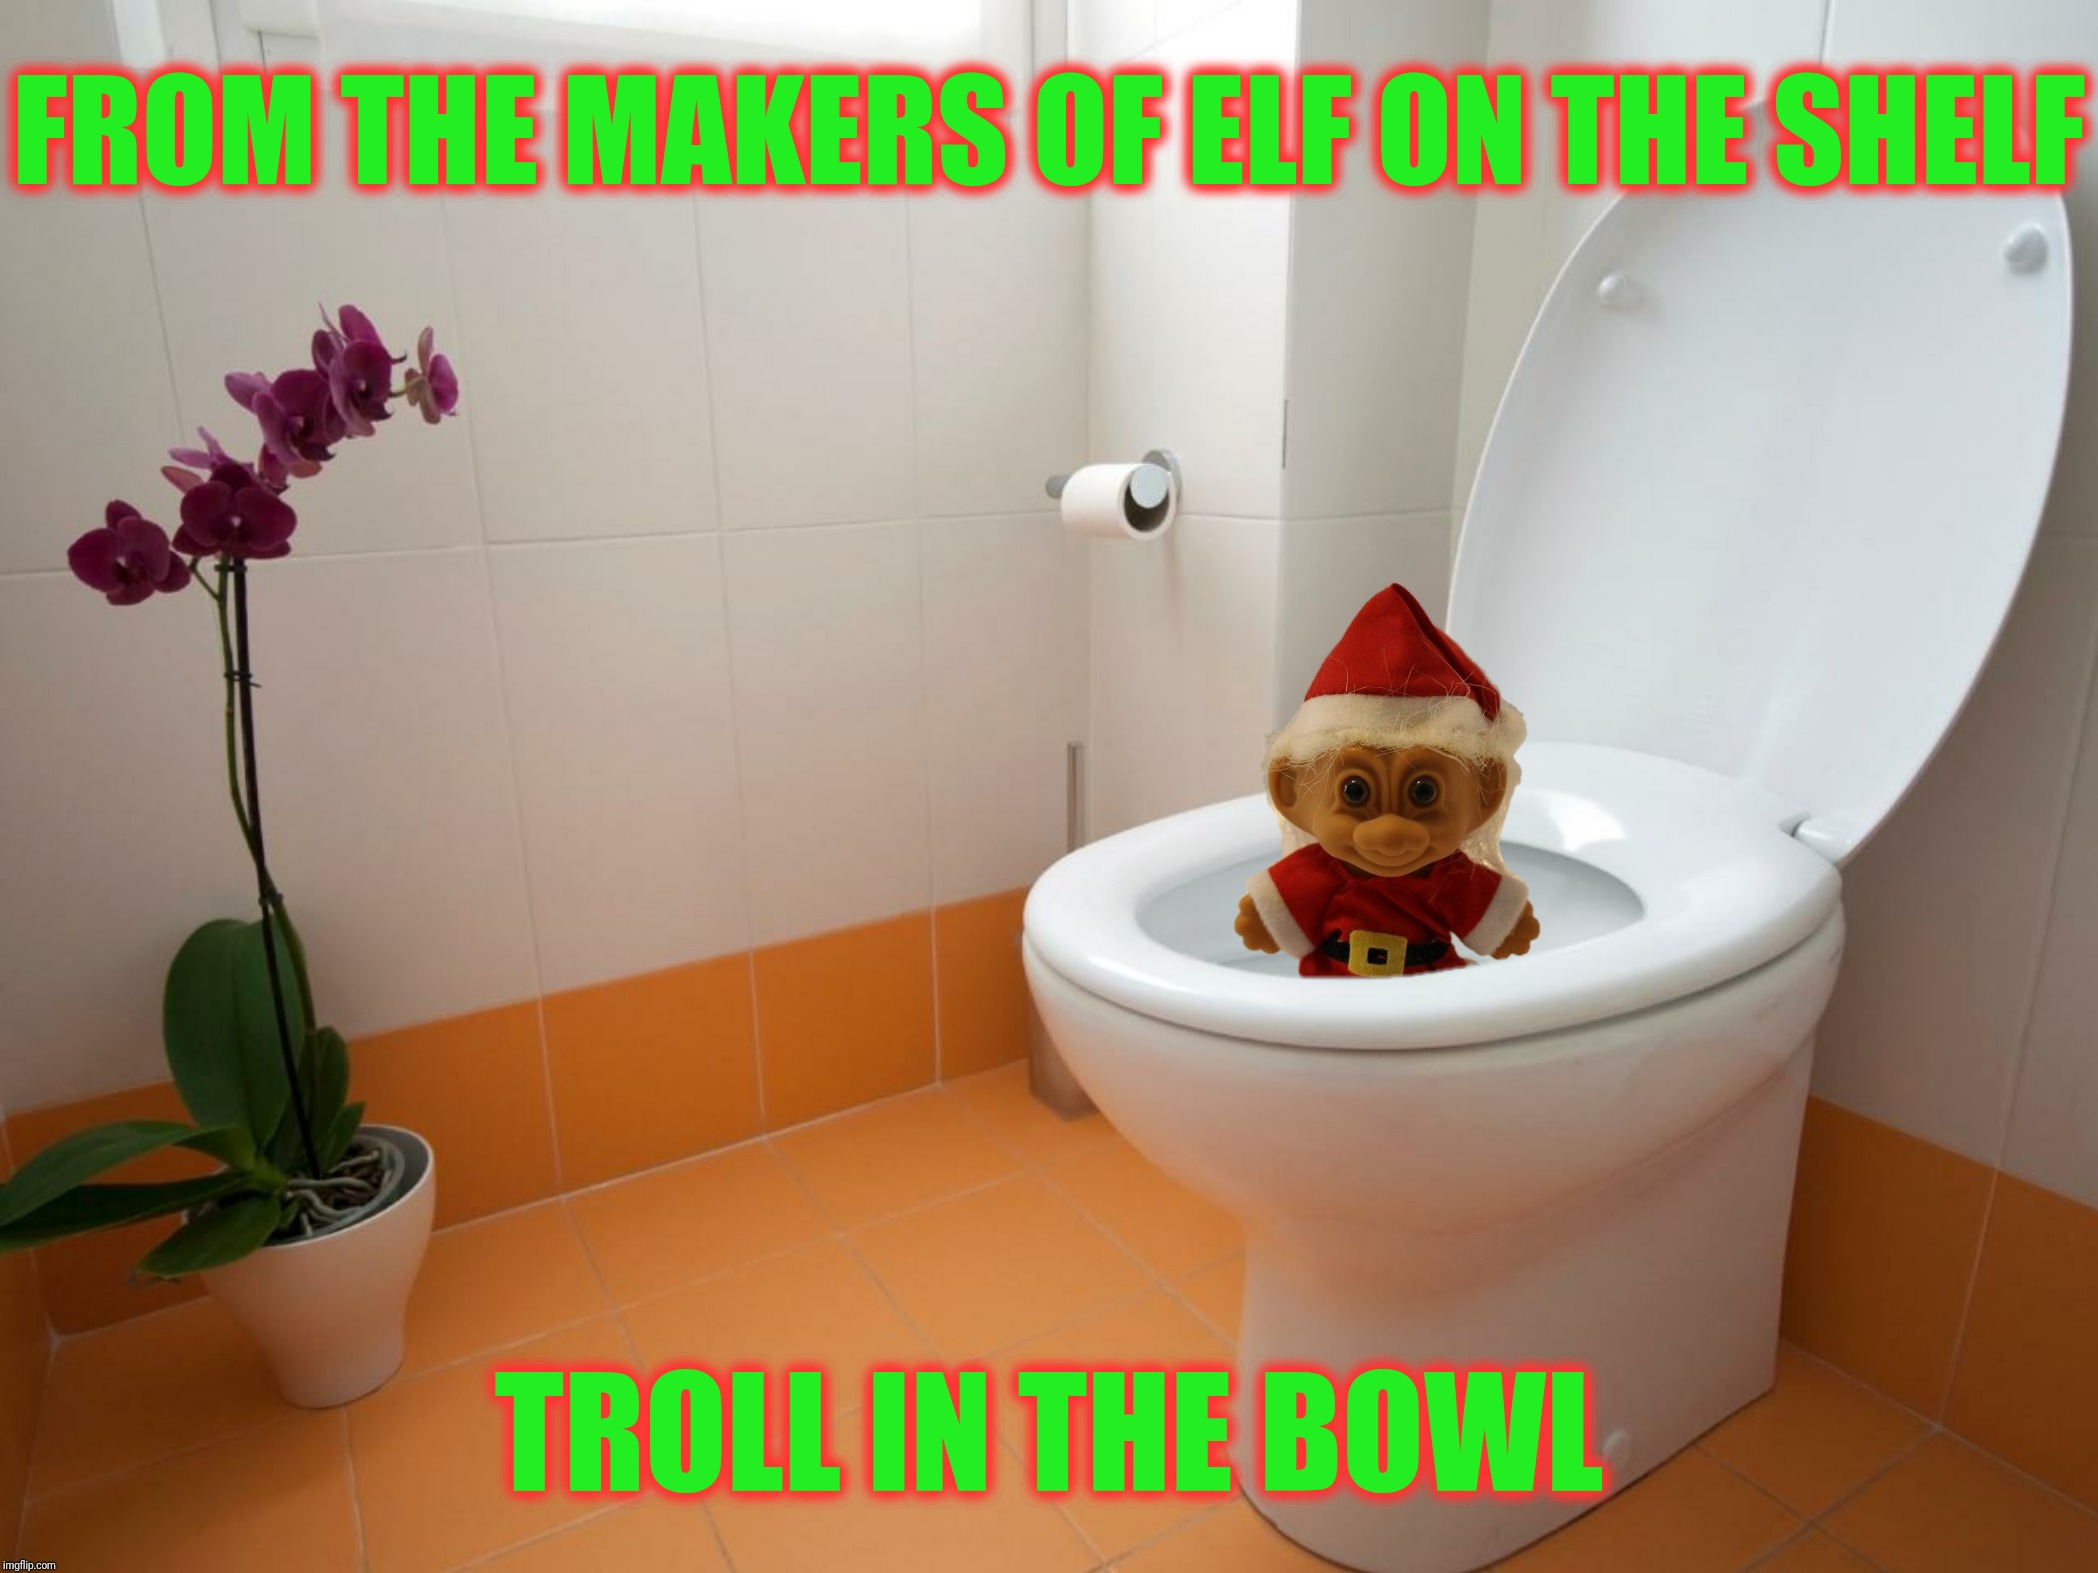 Bad Photoshop Sunday presents:  Making sure you keep your sh!t together (A yearly submission) | FROM THE MAKERS OF ELF ON THE SHELF TROLL IN THE BOWL | image tagged in bad photoshop sunday,troll in the bowl,elf on the shelf | made w/ Imgflip meme maker